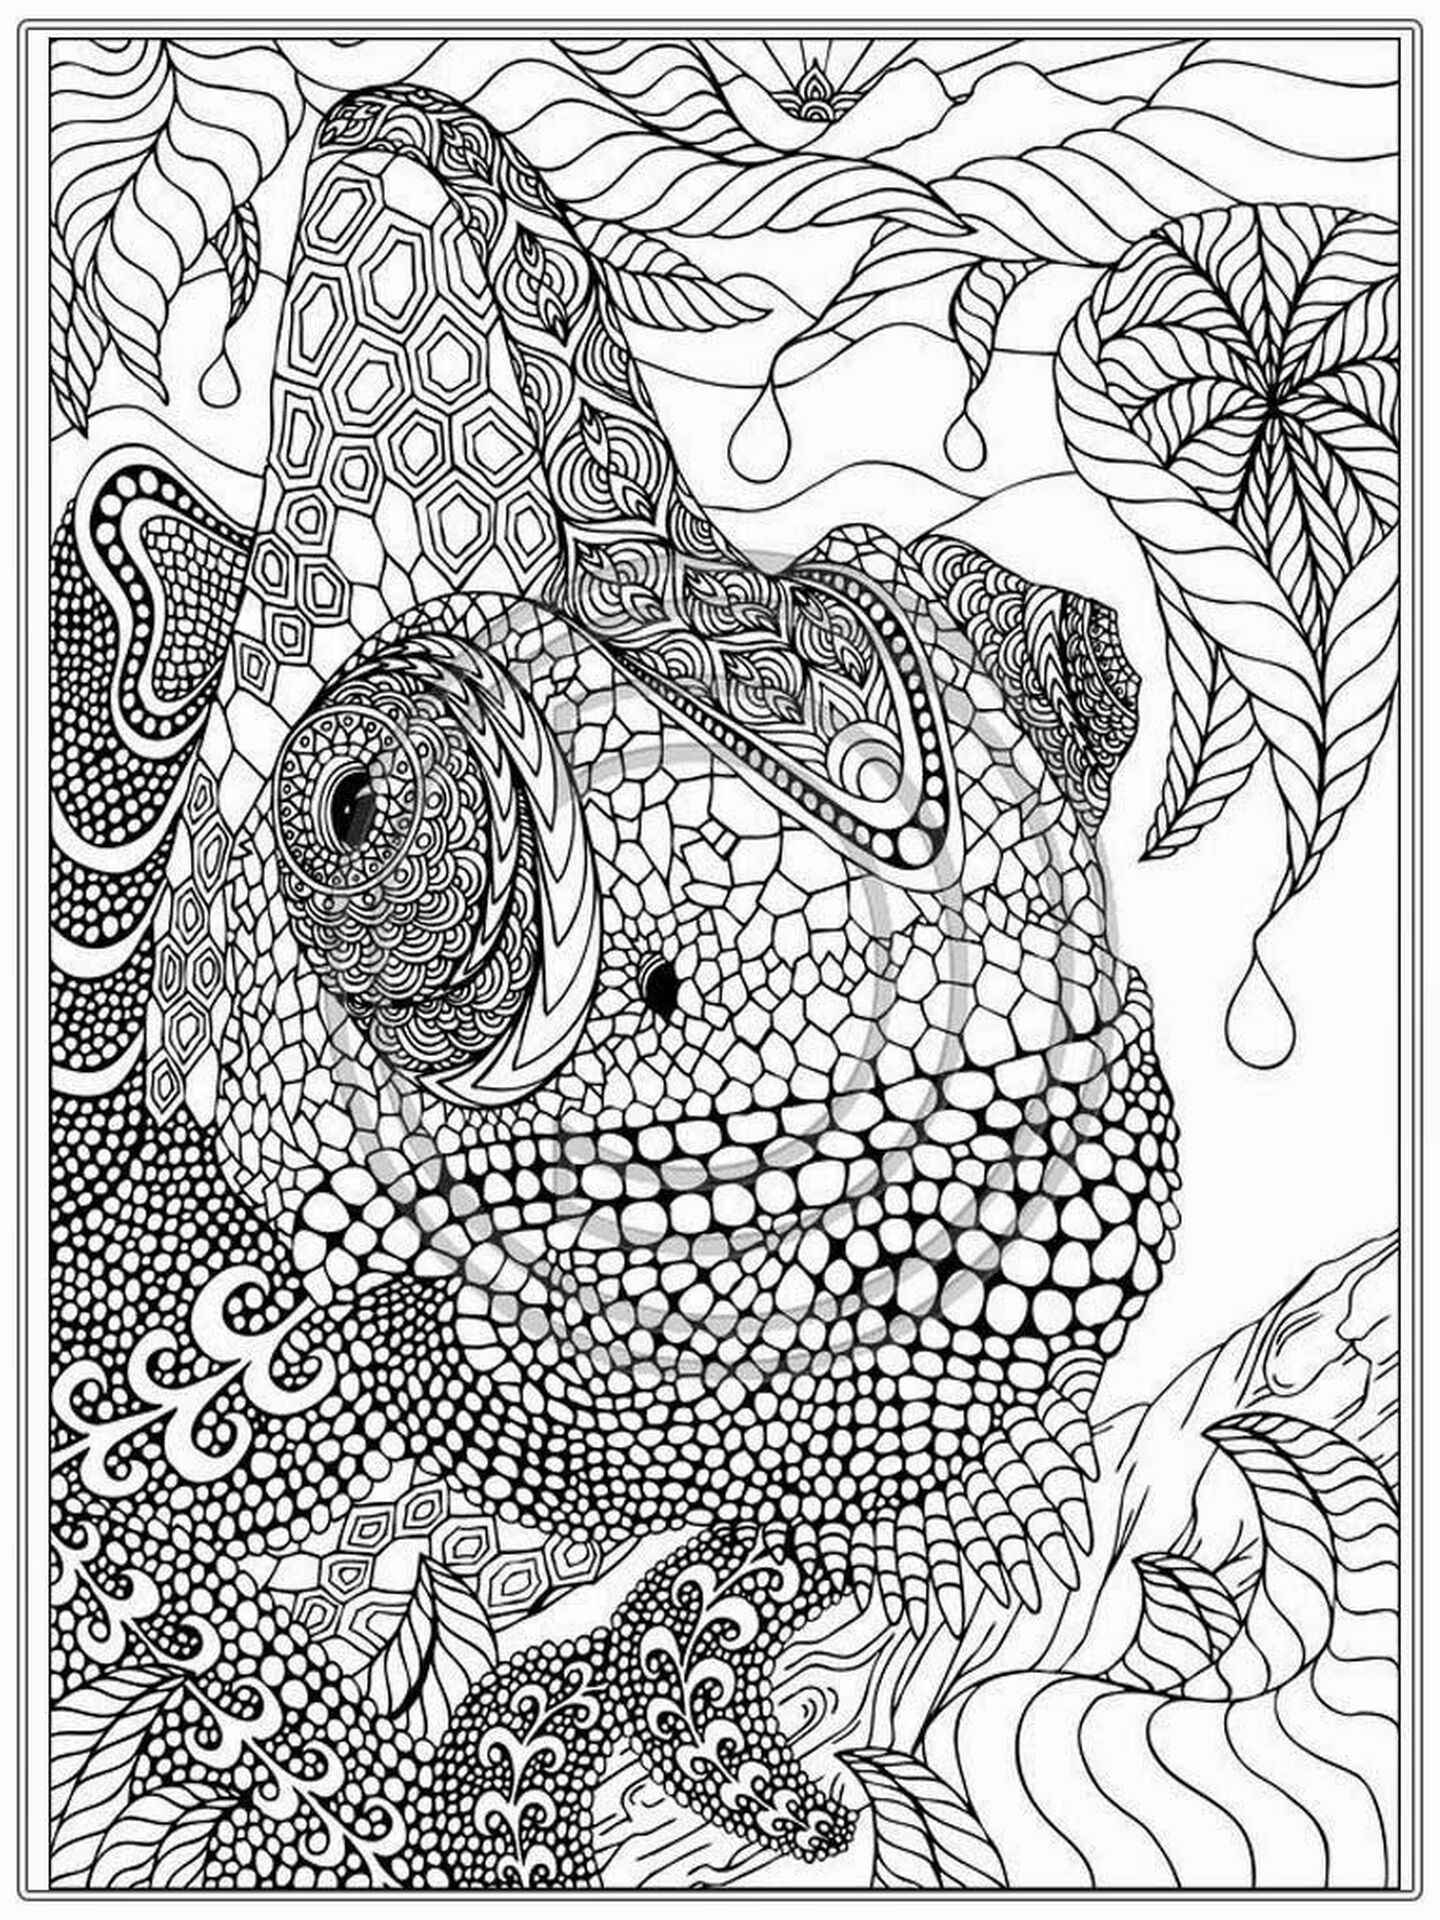 Chameleon Coloring Sheet For Adults